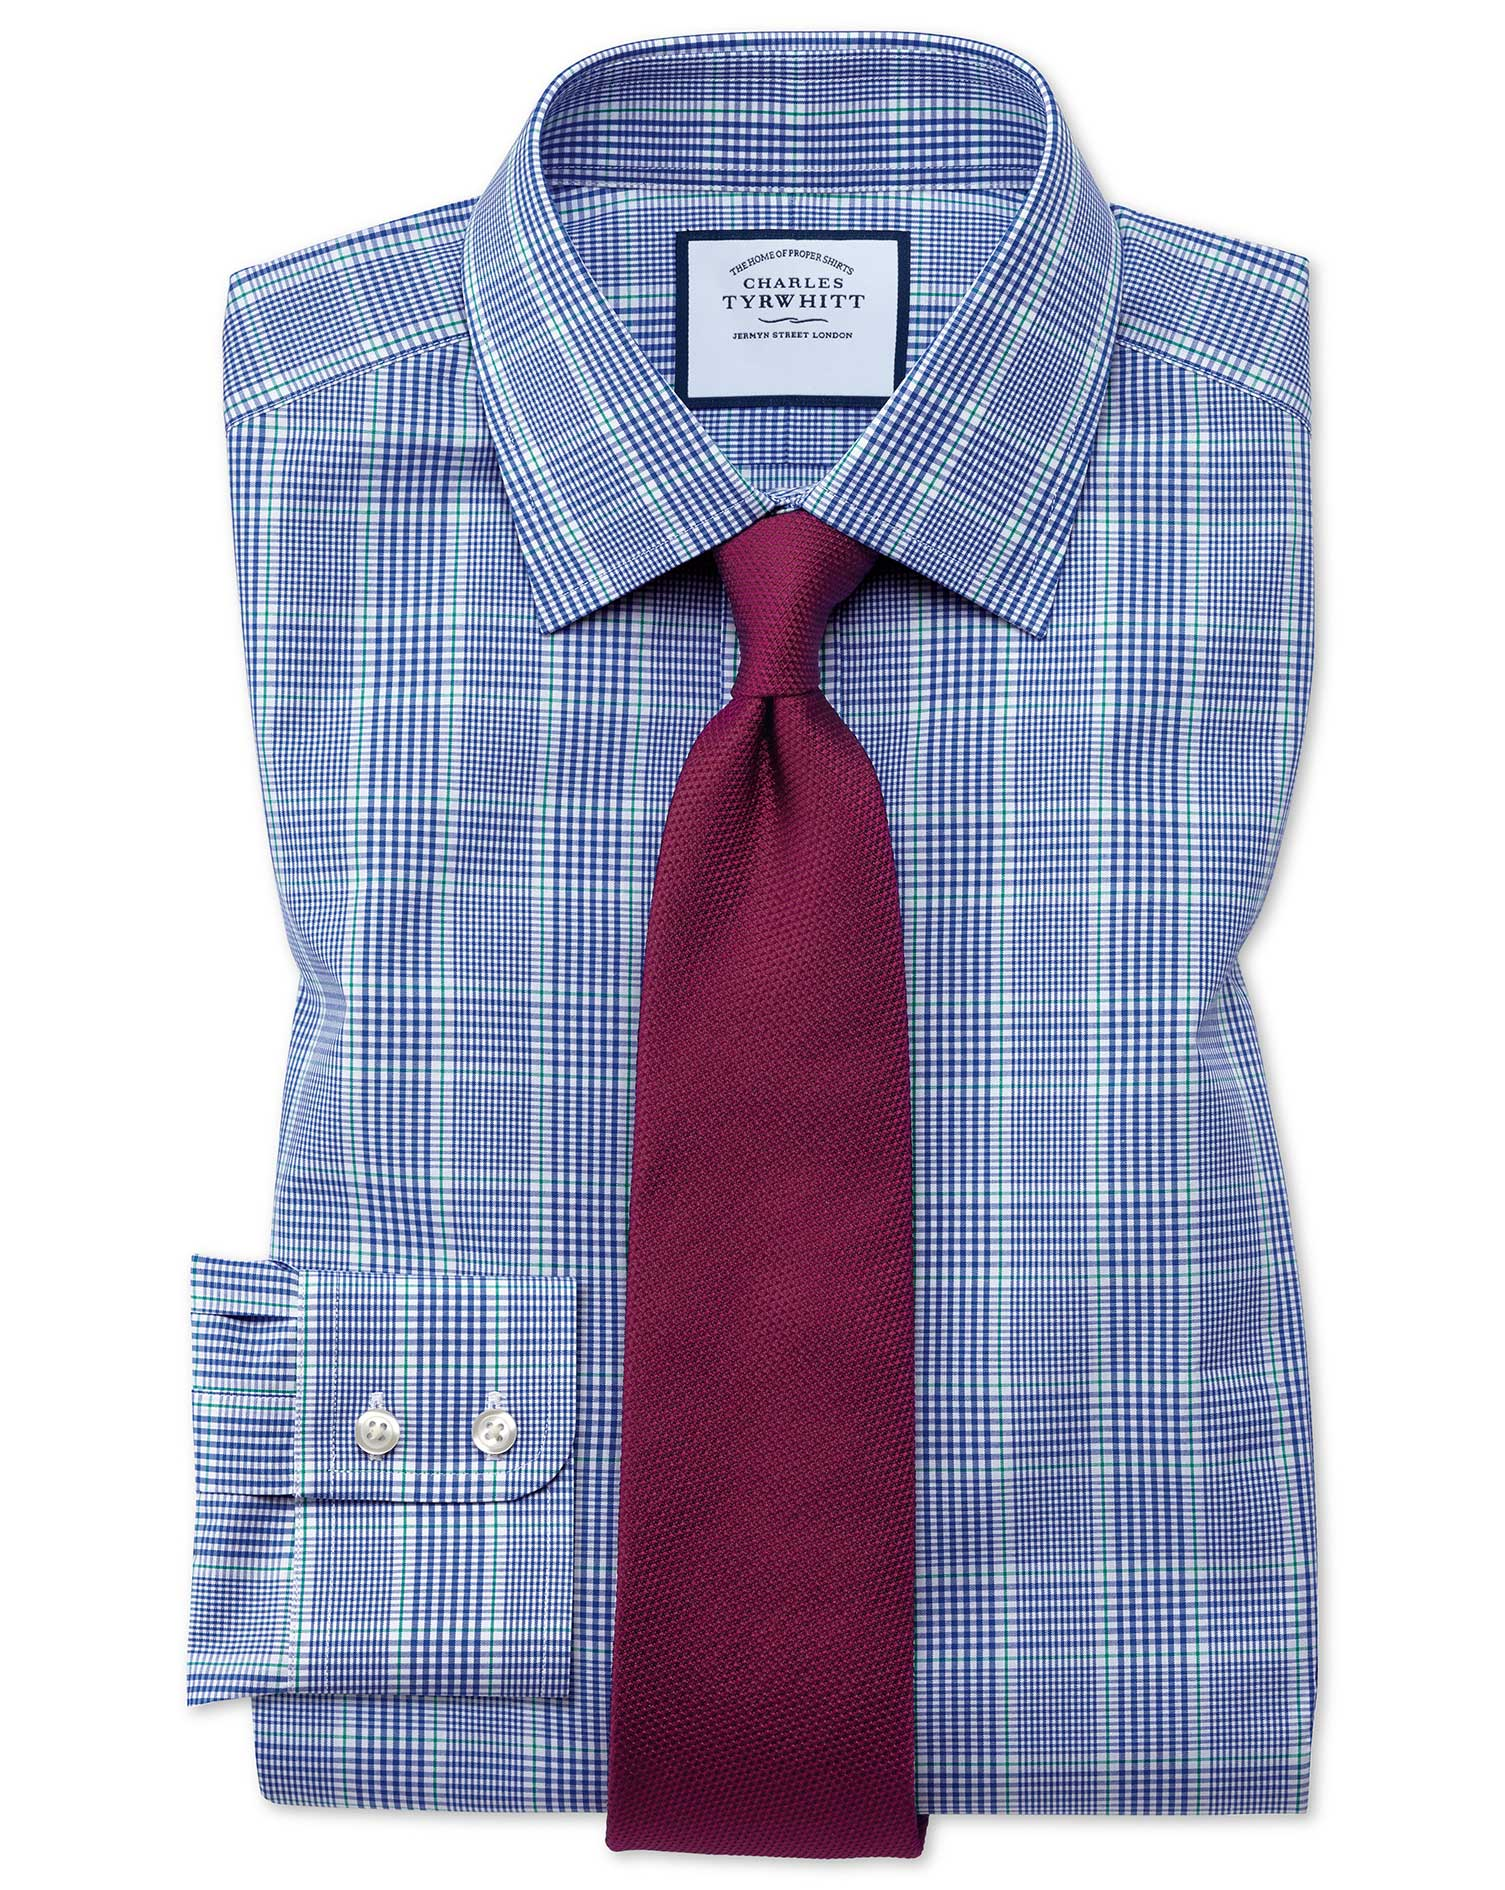 Slim Fit Prince Of Wales Blue and Green Cotton Formal Shirt Single Cuff Size 17/33 by Charles Tyrwhi